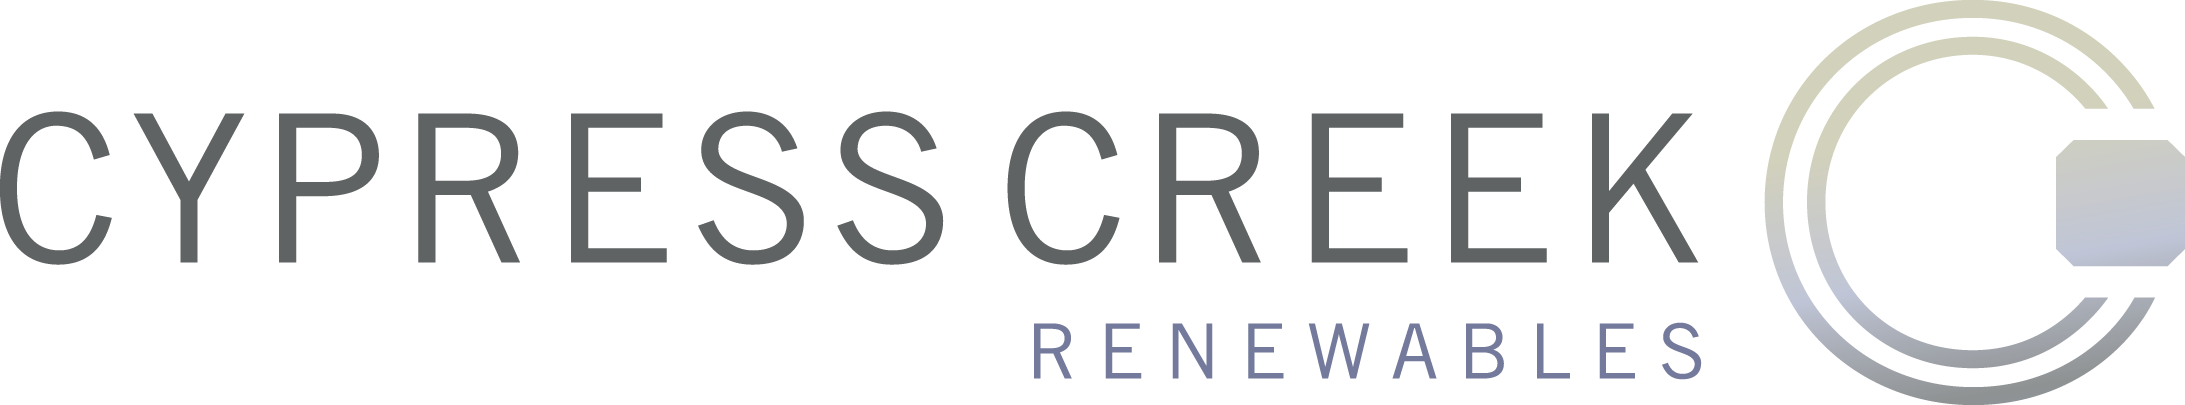 Cypress Creek Renewables To Acquire Fls Energy